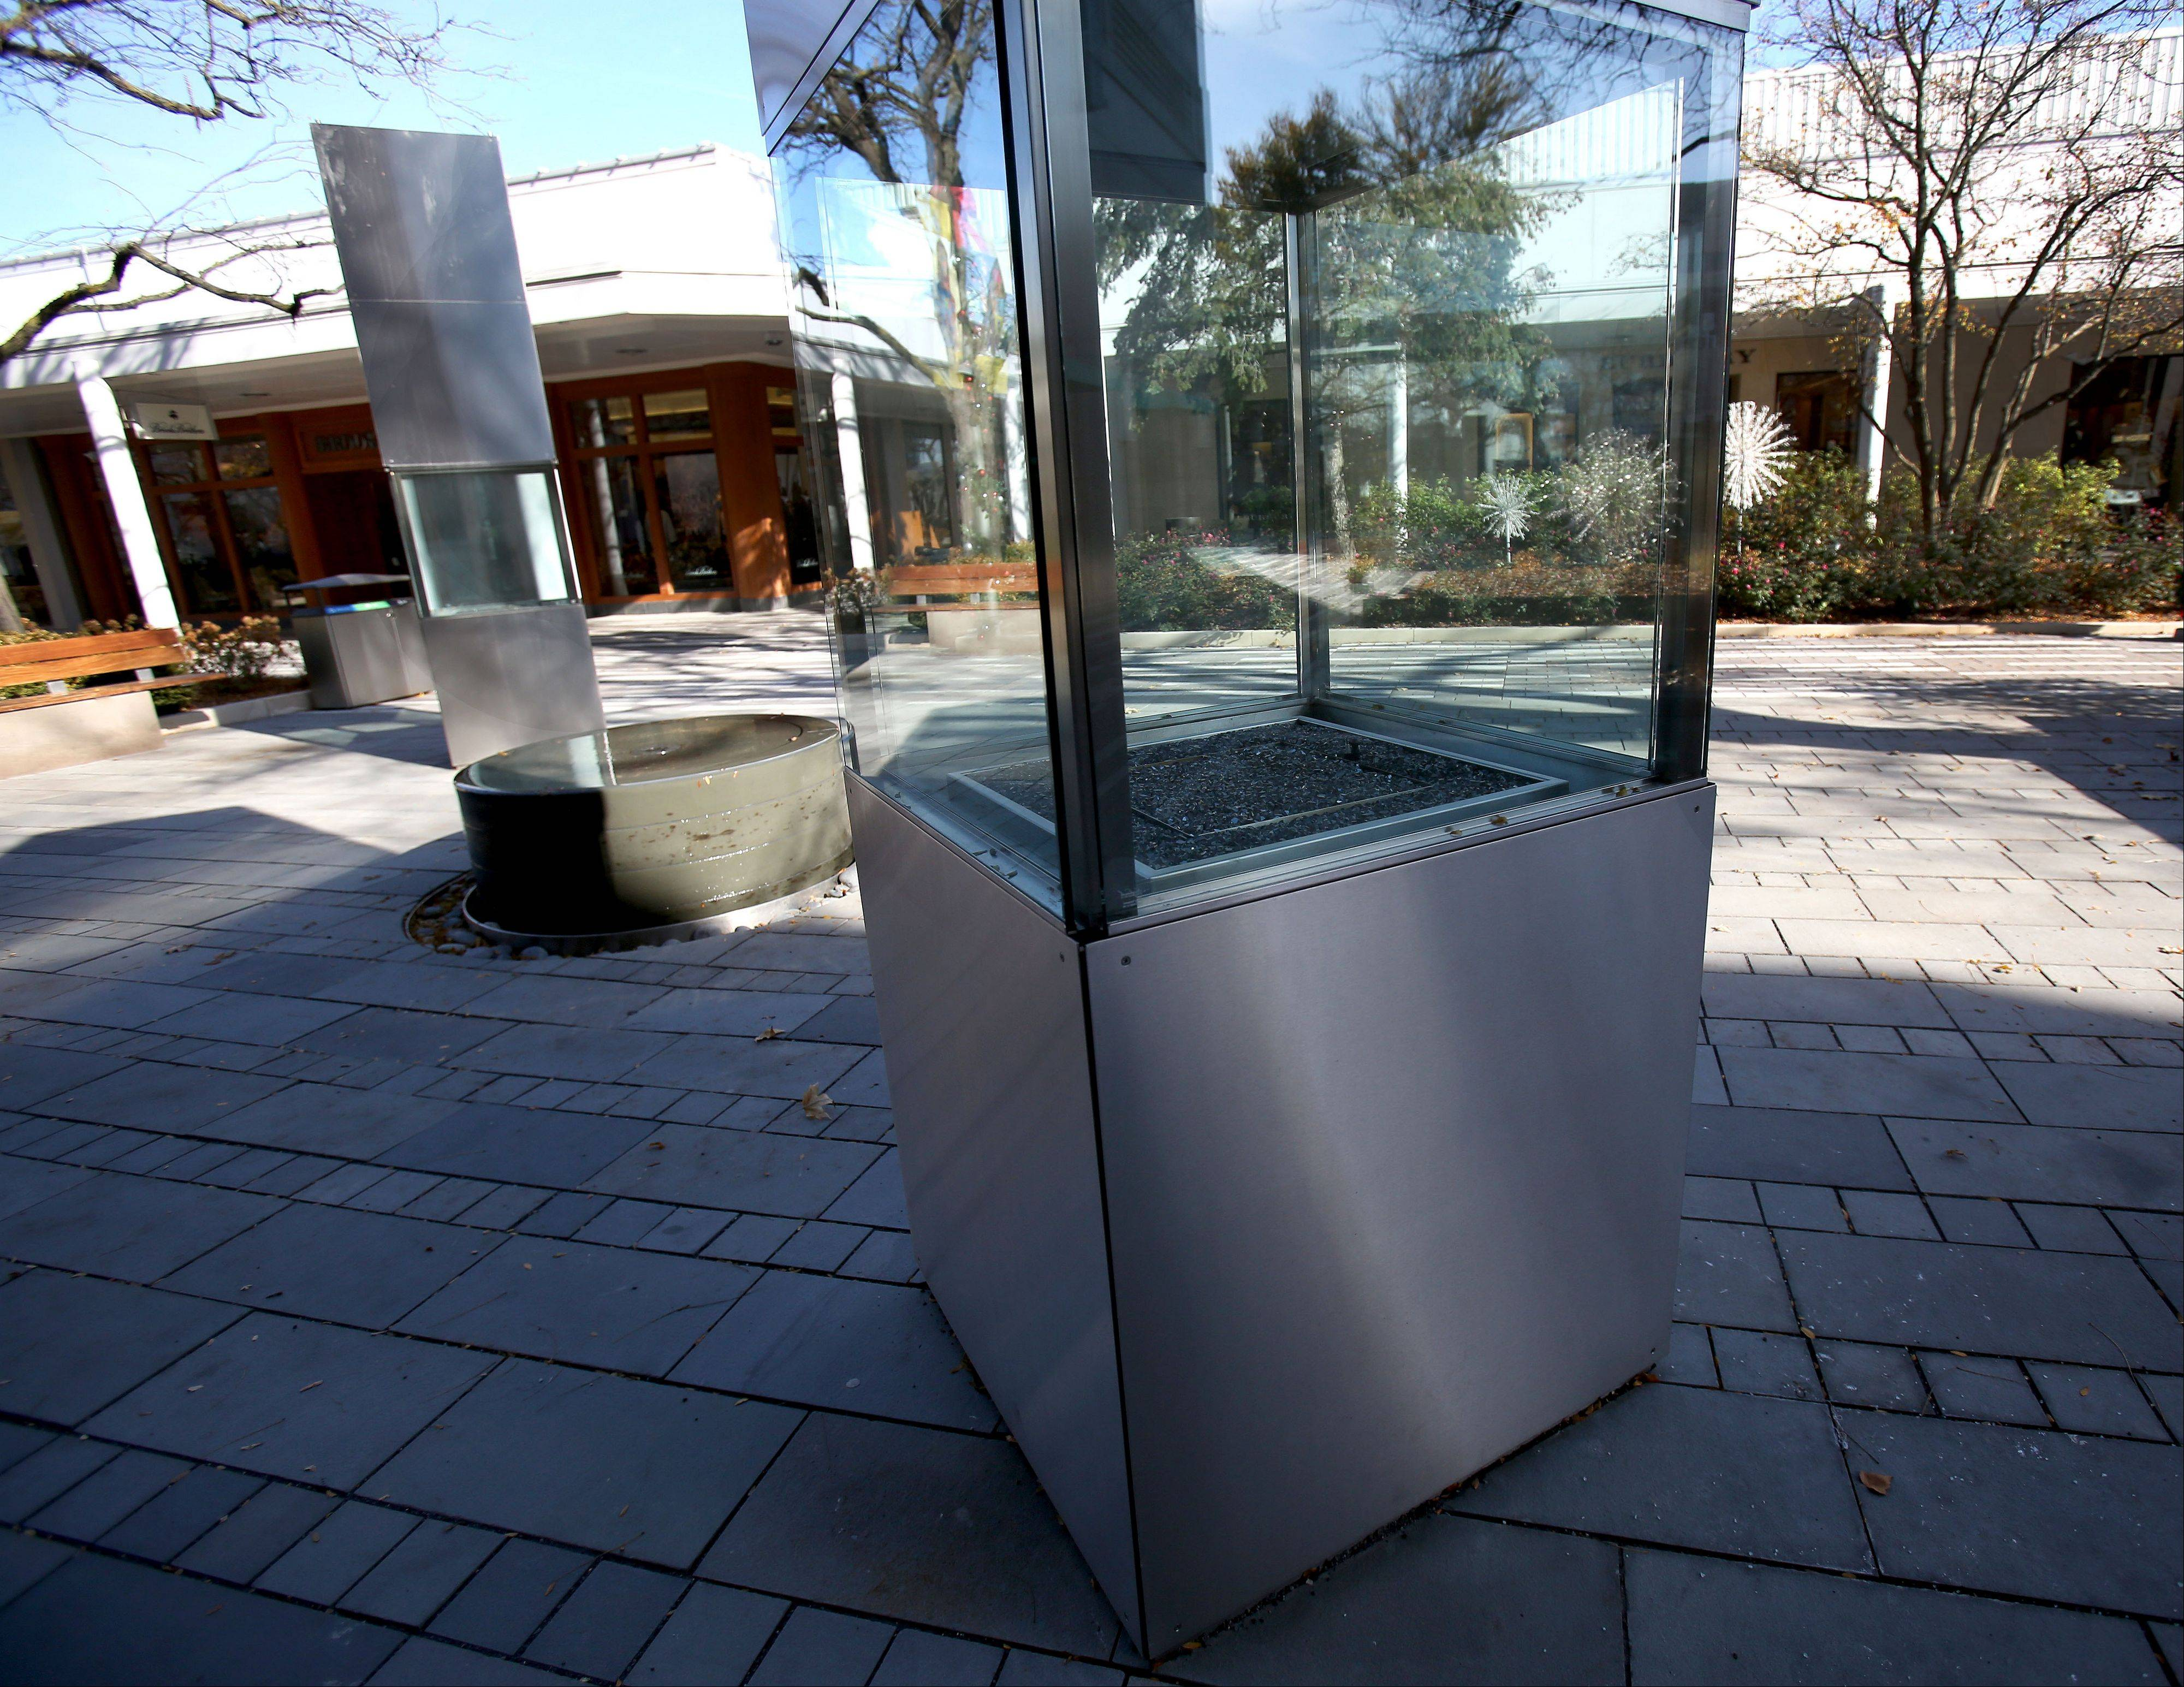 Fire totems and button fountains were added as part of a large renovation of Oakbrook Center.